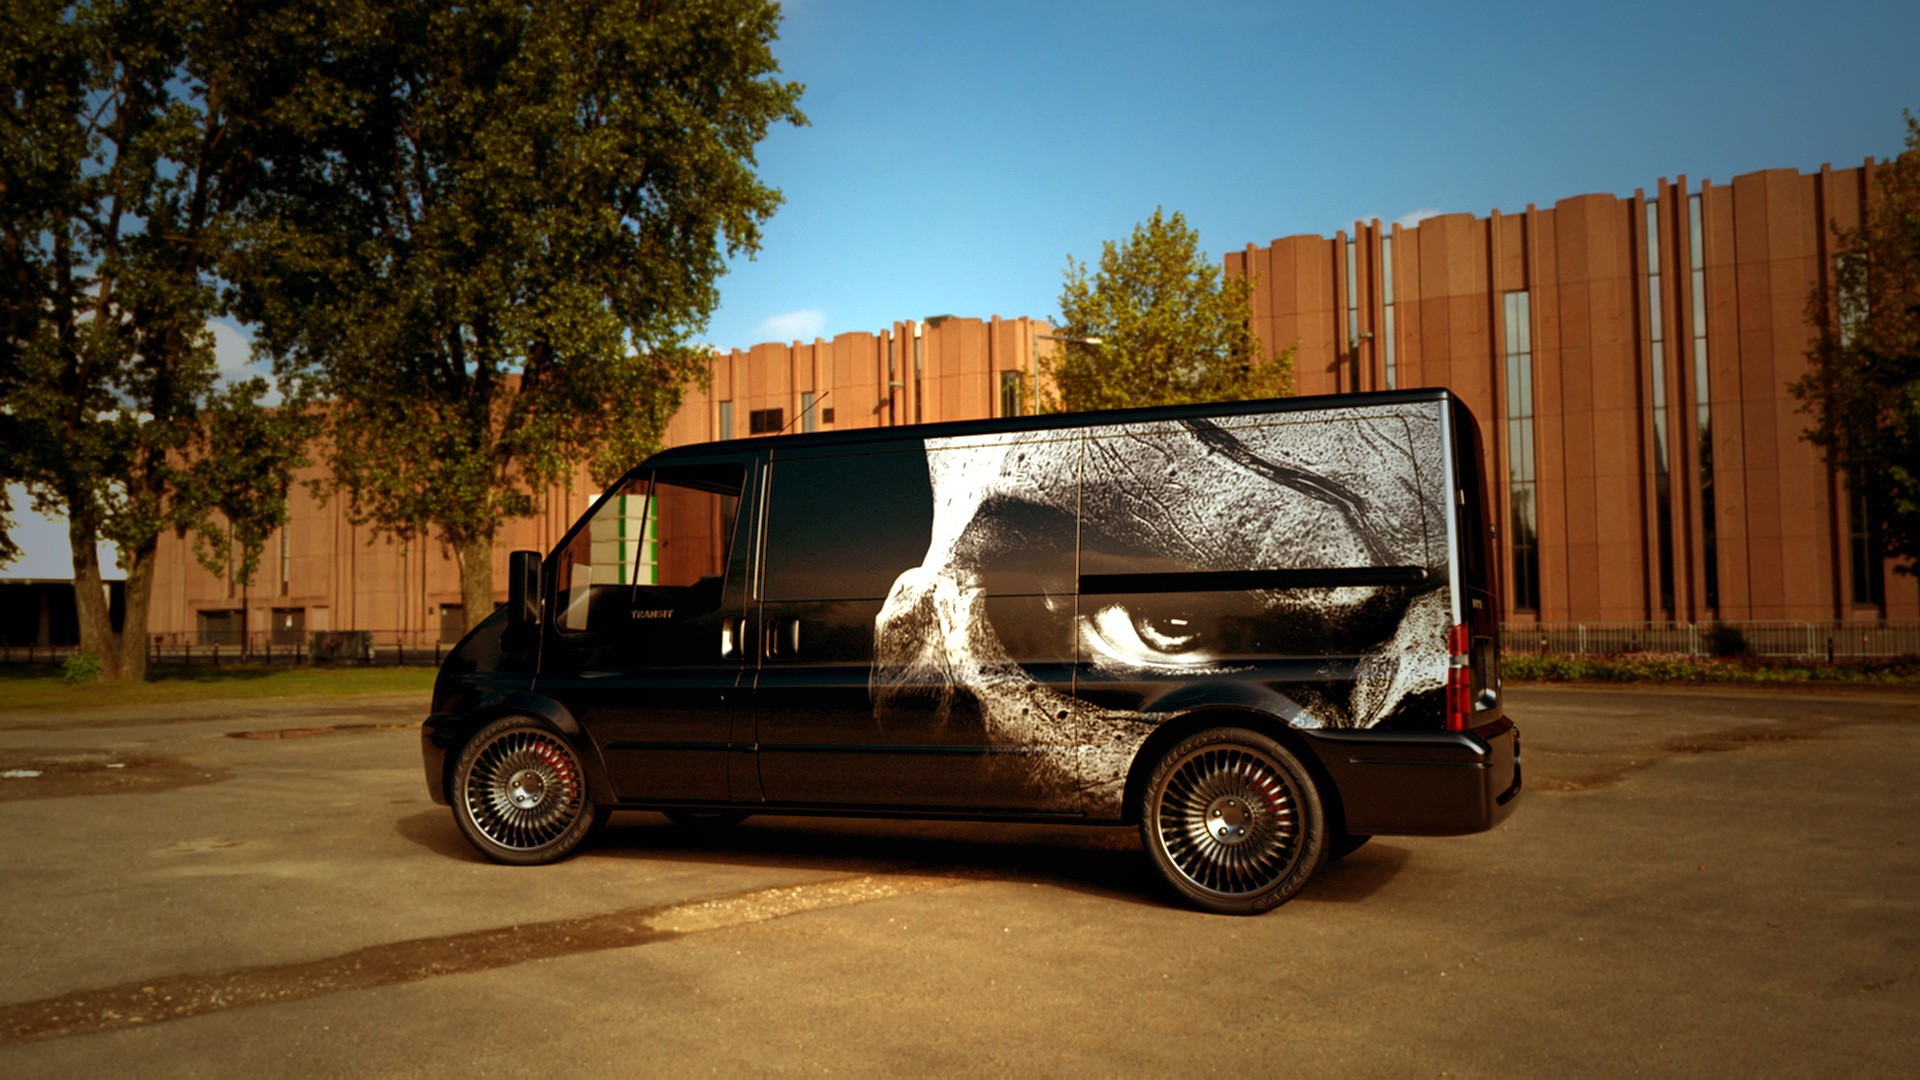 Ford Transit van 3d art